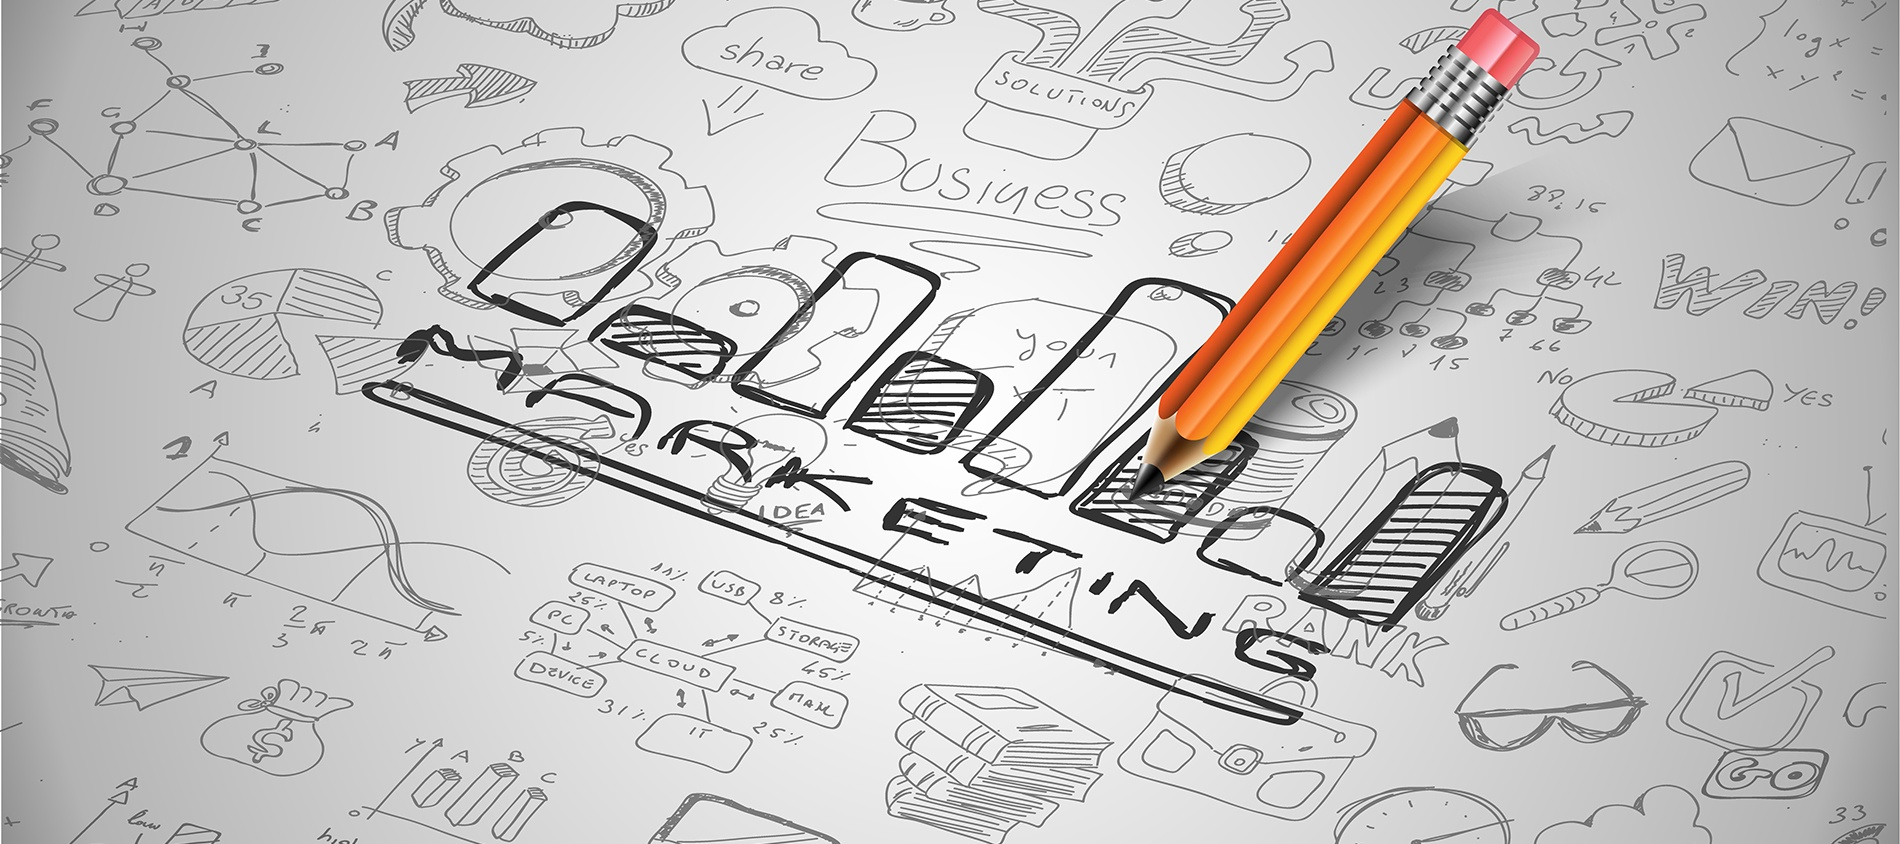 Estrategia creativa de marketing para tu empresa.